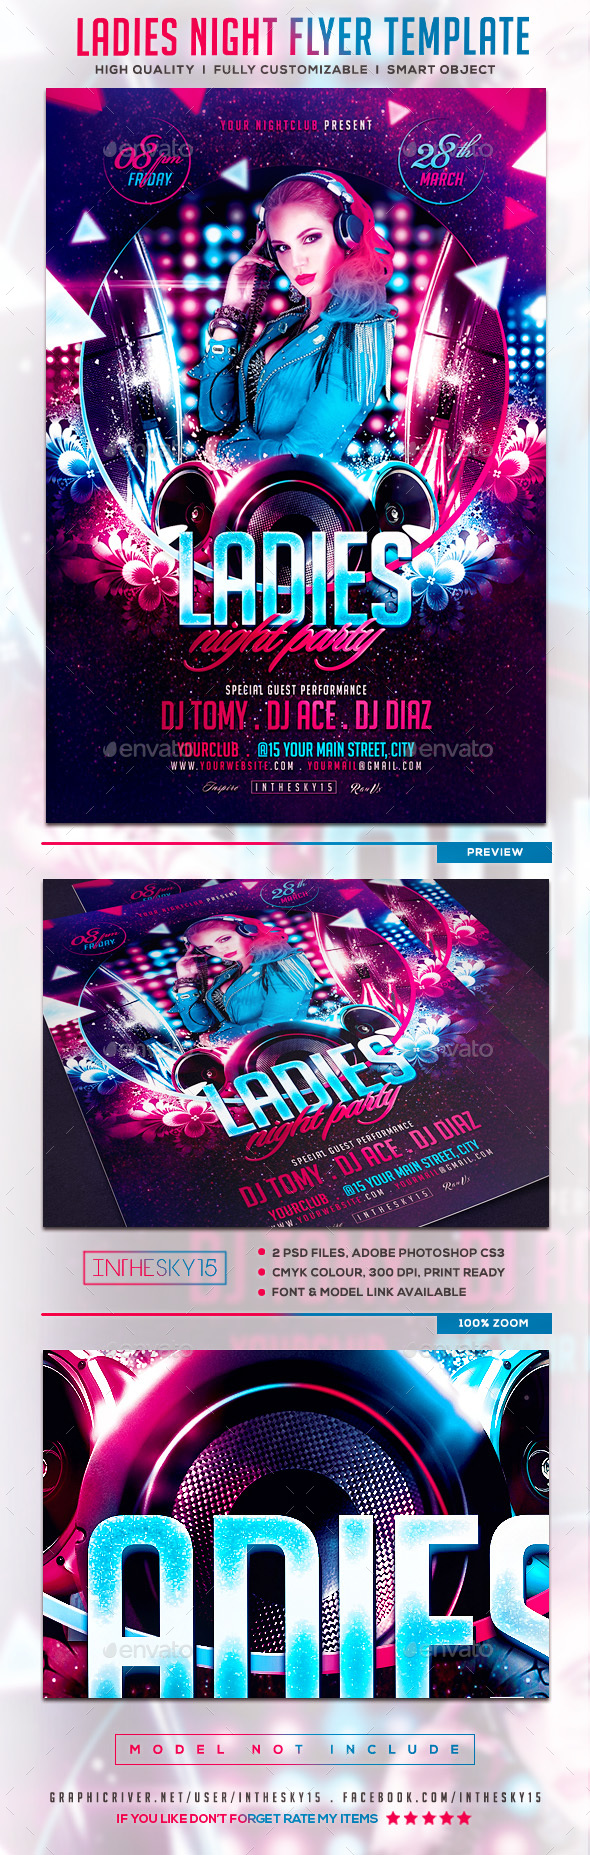 Ladies Night V2 Flyer Template - Flyers Print Templates